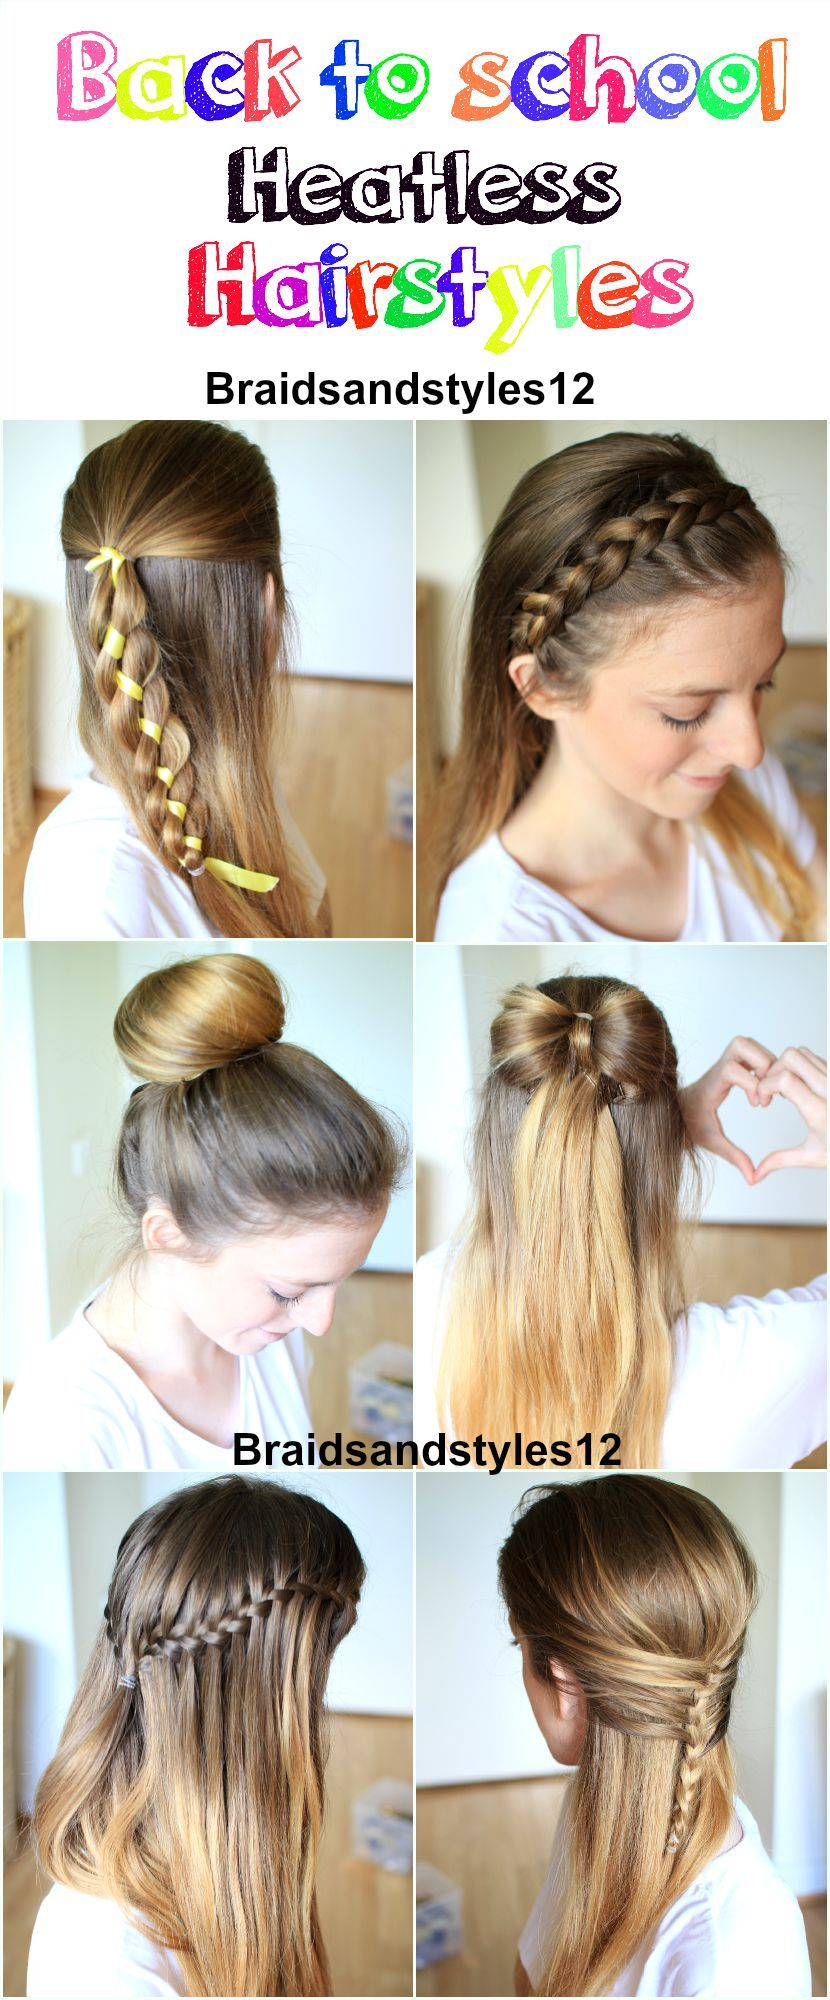 Braidsandstyles school youtube and hair style